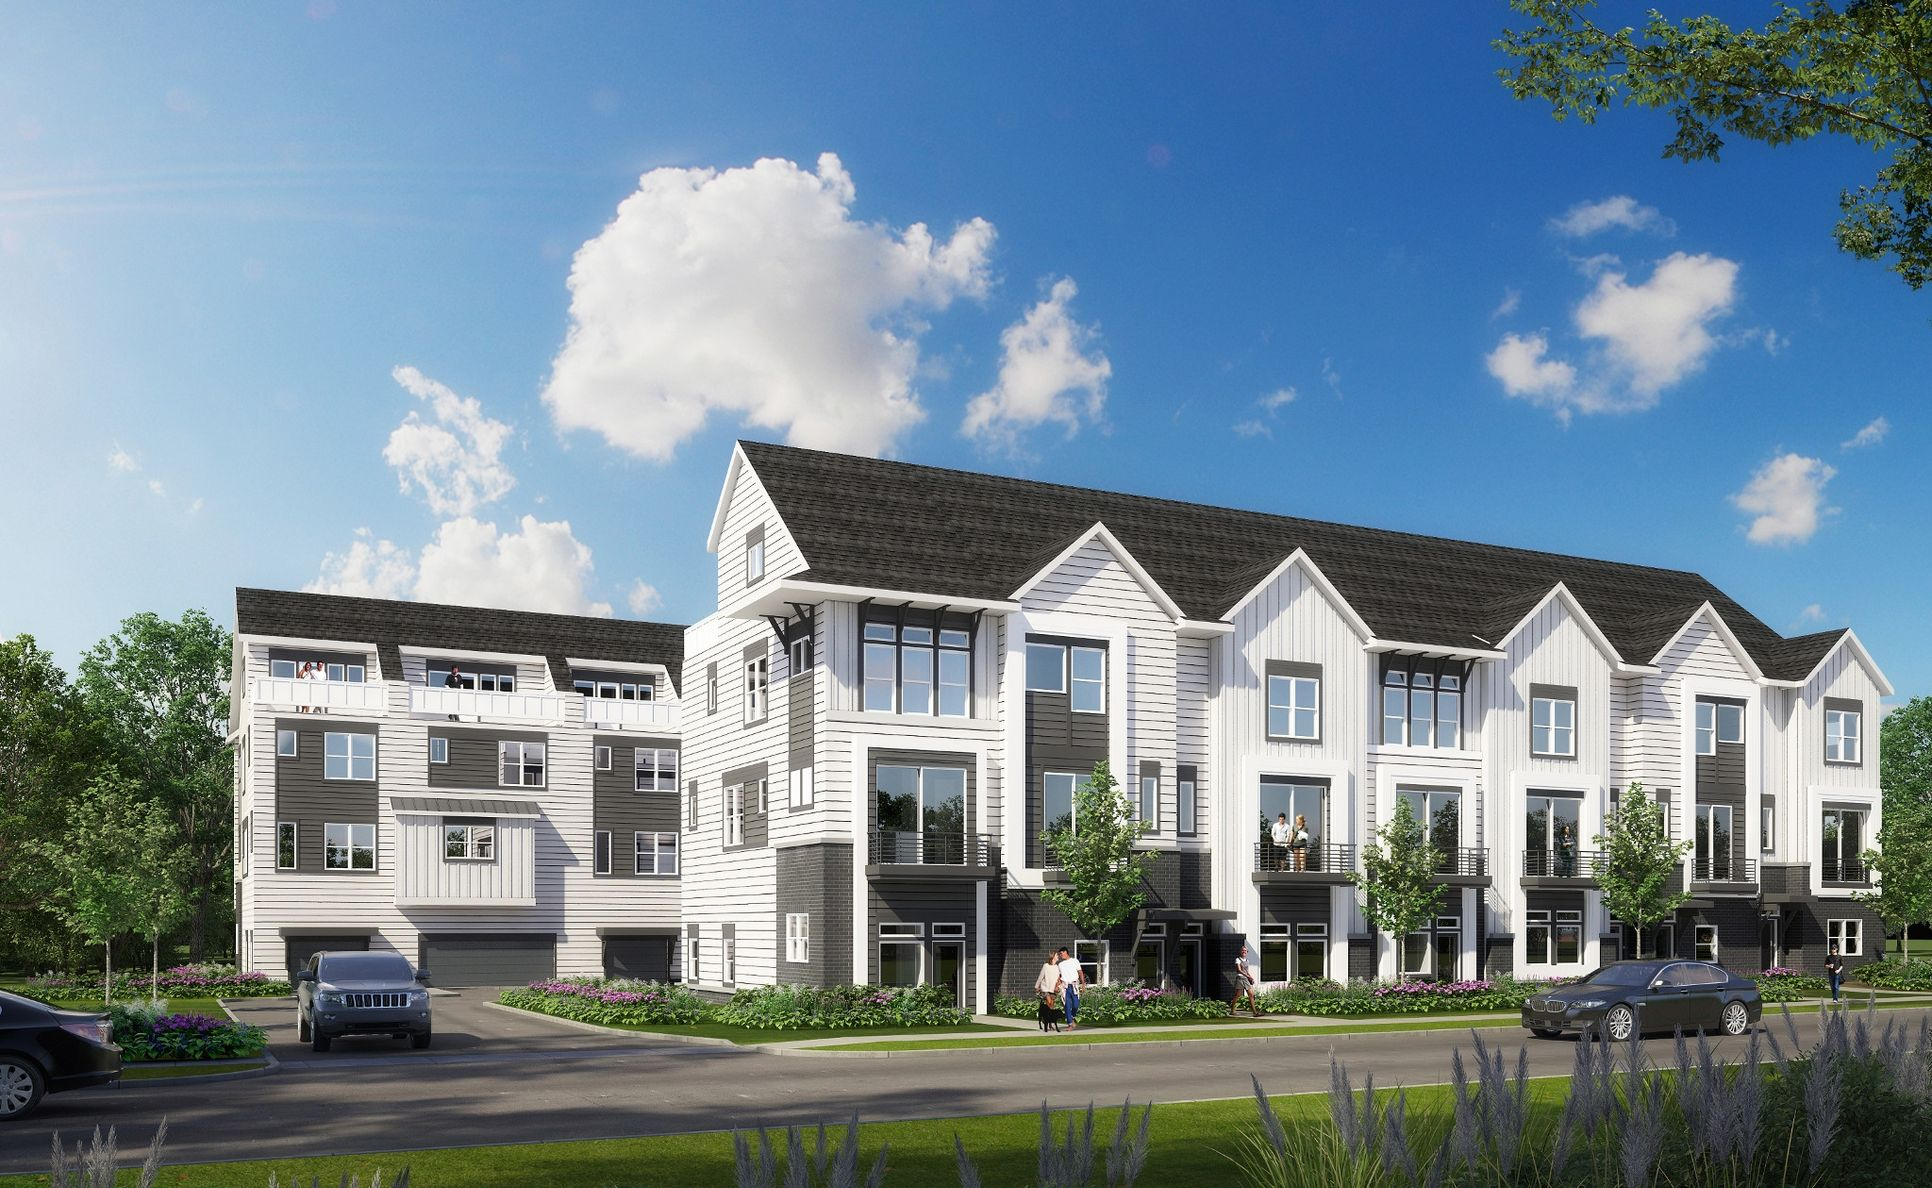 Lucent at Cotswold rendering:Lucent at Cotswold